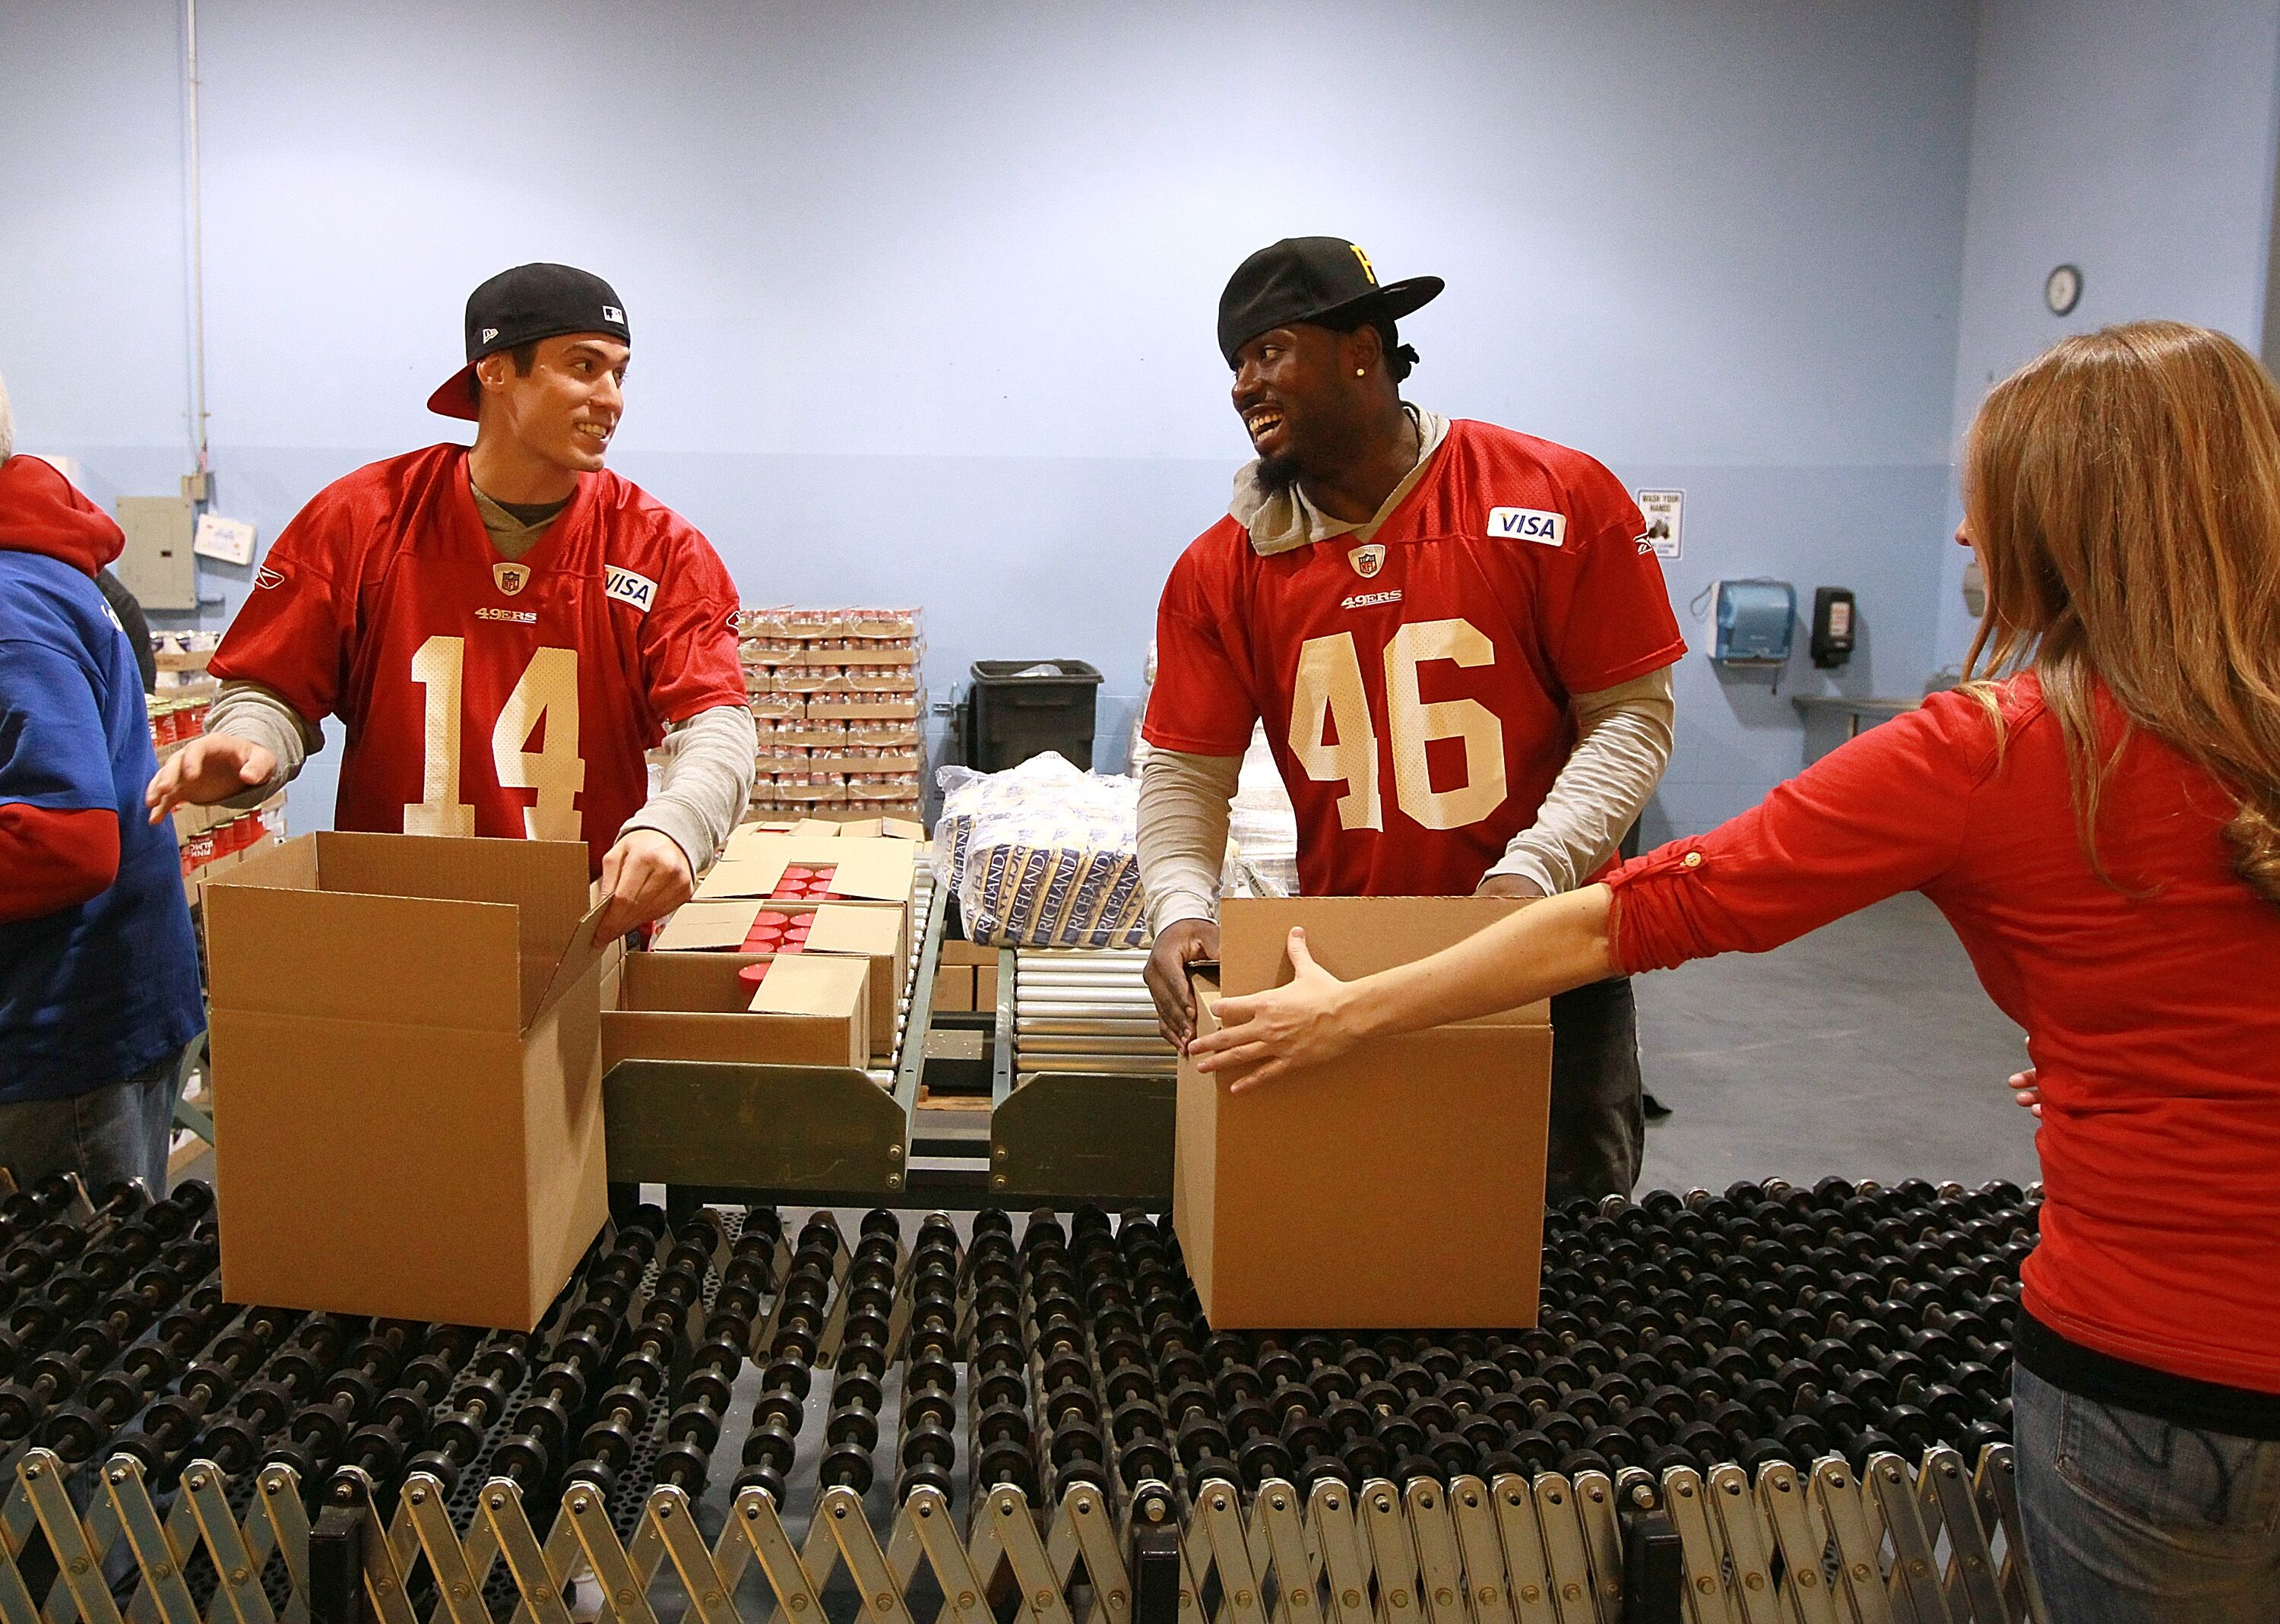 106655903-members-of-the-49ers-help-sort-and-pack-food-donations-for-the-needy.jpg